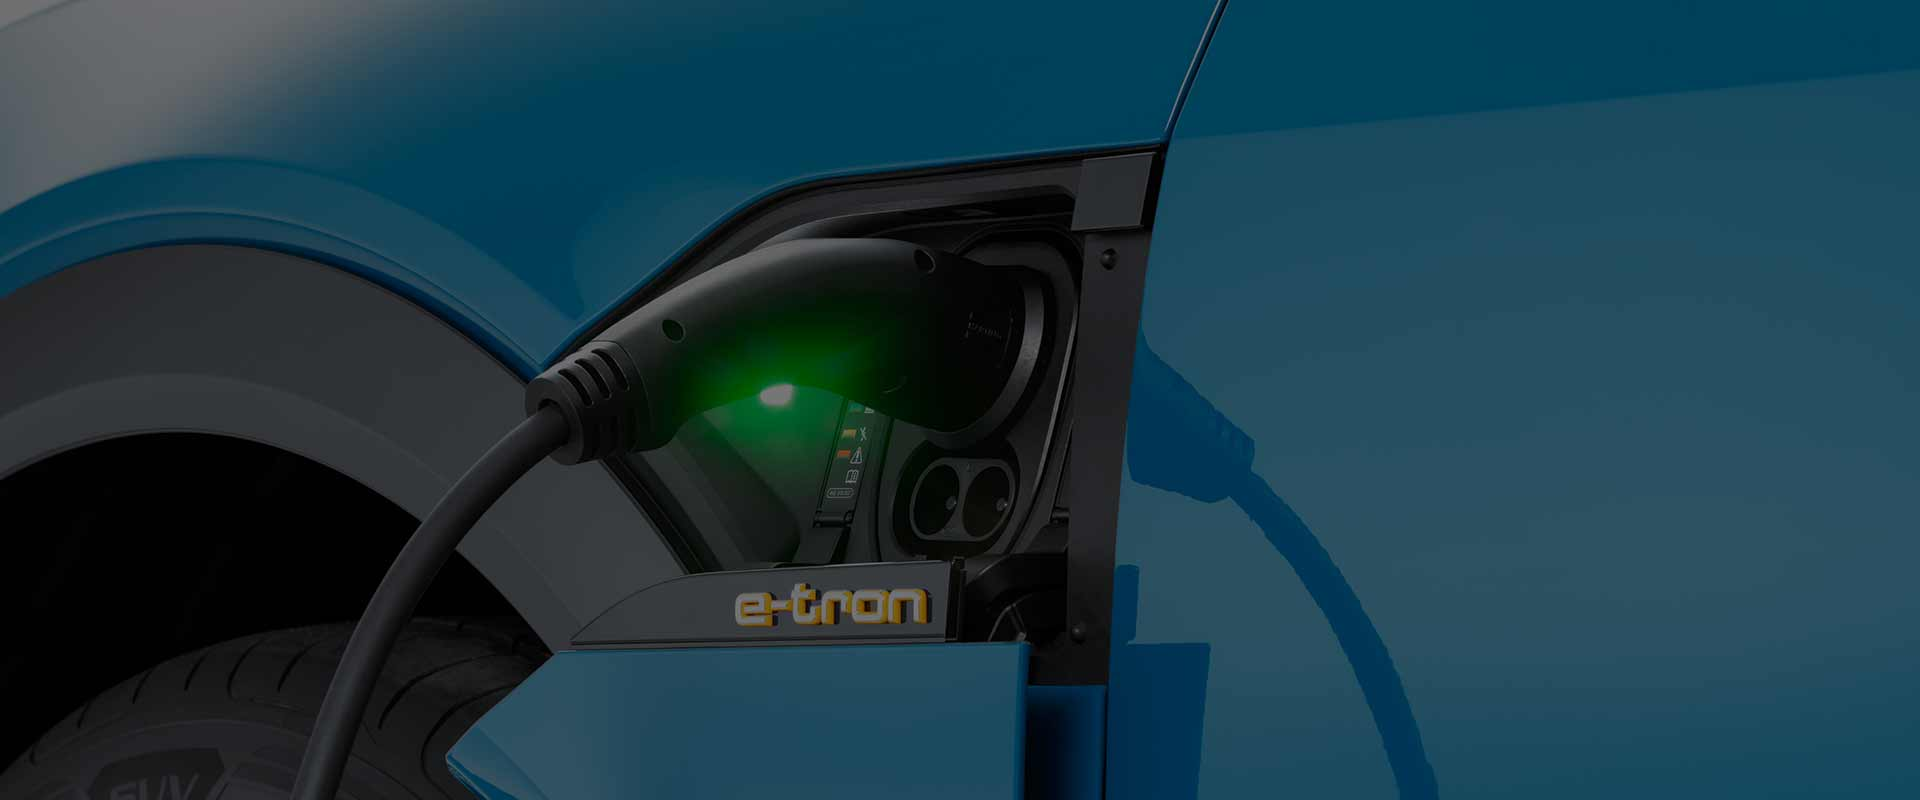 electric vehicle charger for an Audi e-tron